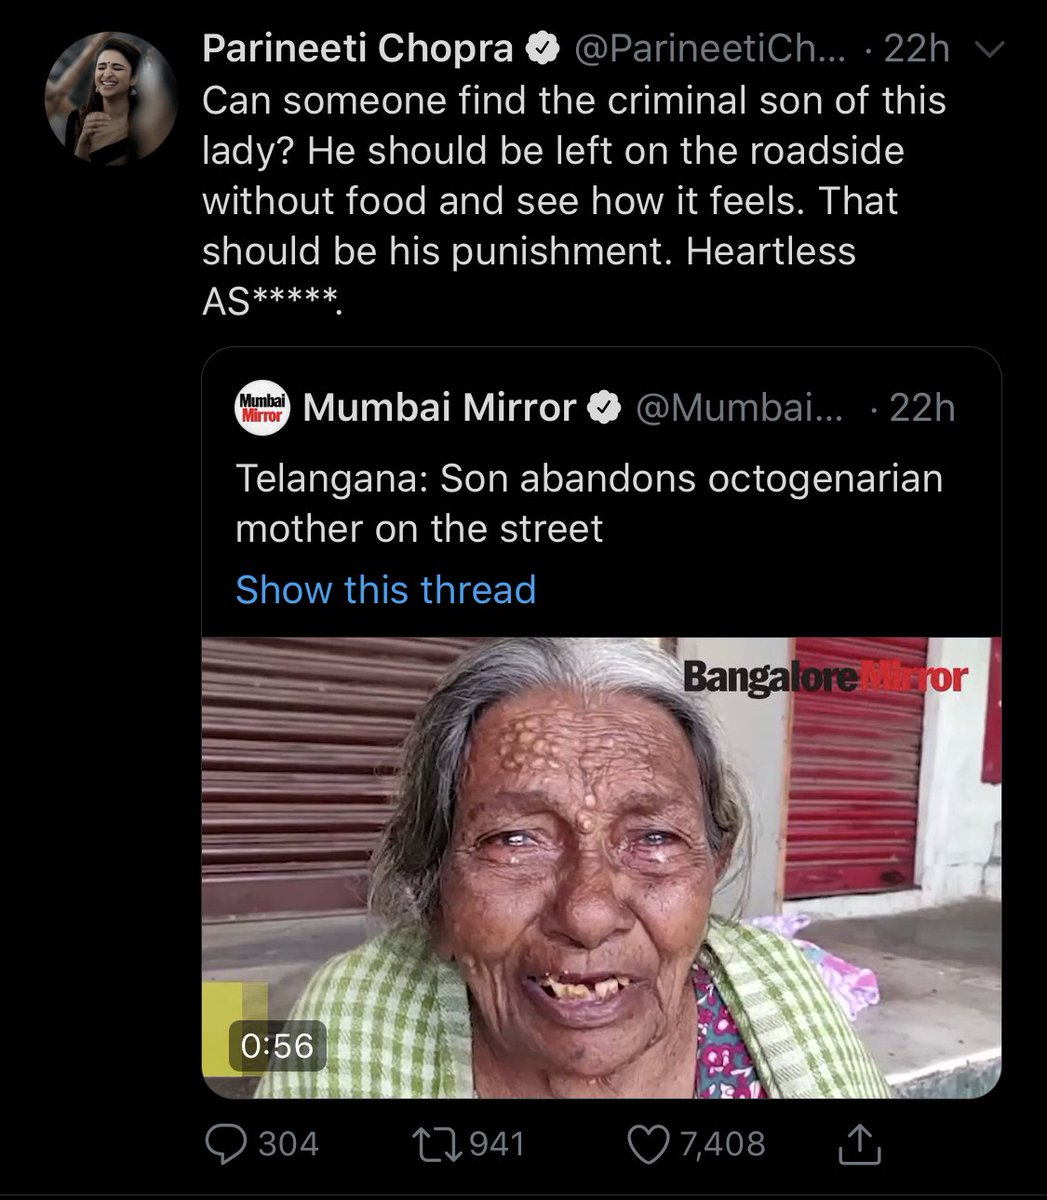 """@ParineetiChopra will u apologise to her son for calling him """"a**"""" and now give a similar name to her daughter in law? Or the propoganda is only gender specific? Hope you can be misandry free in ur perspective  @vaastavngo  @siff4india @MensDayOutIndia  @cskkanupic.twitter.com/BdOjnQfjWE"""